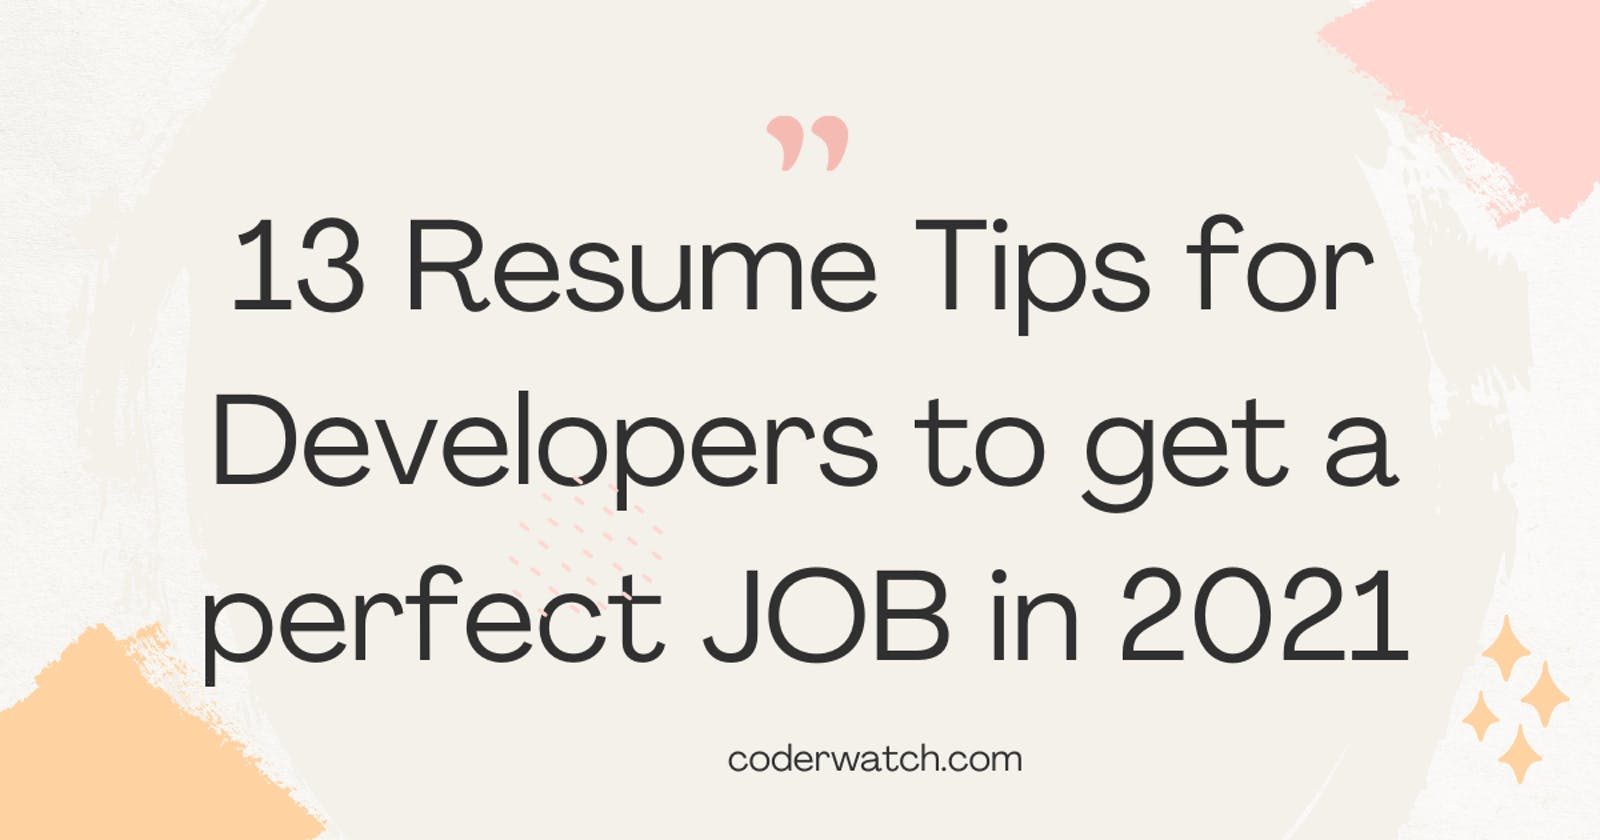 13 Super Amazing resume tips for Developers to get a JOB in 2021